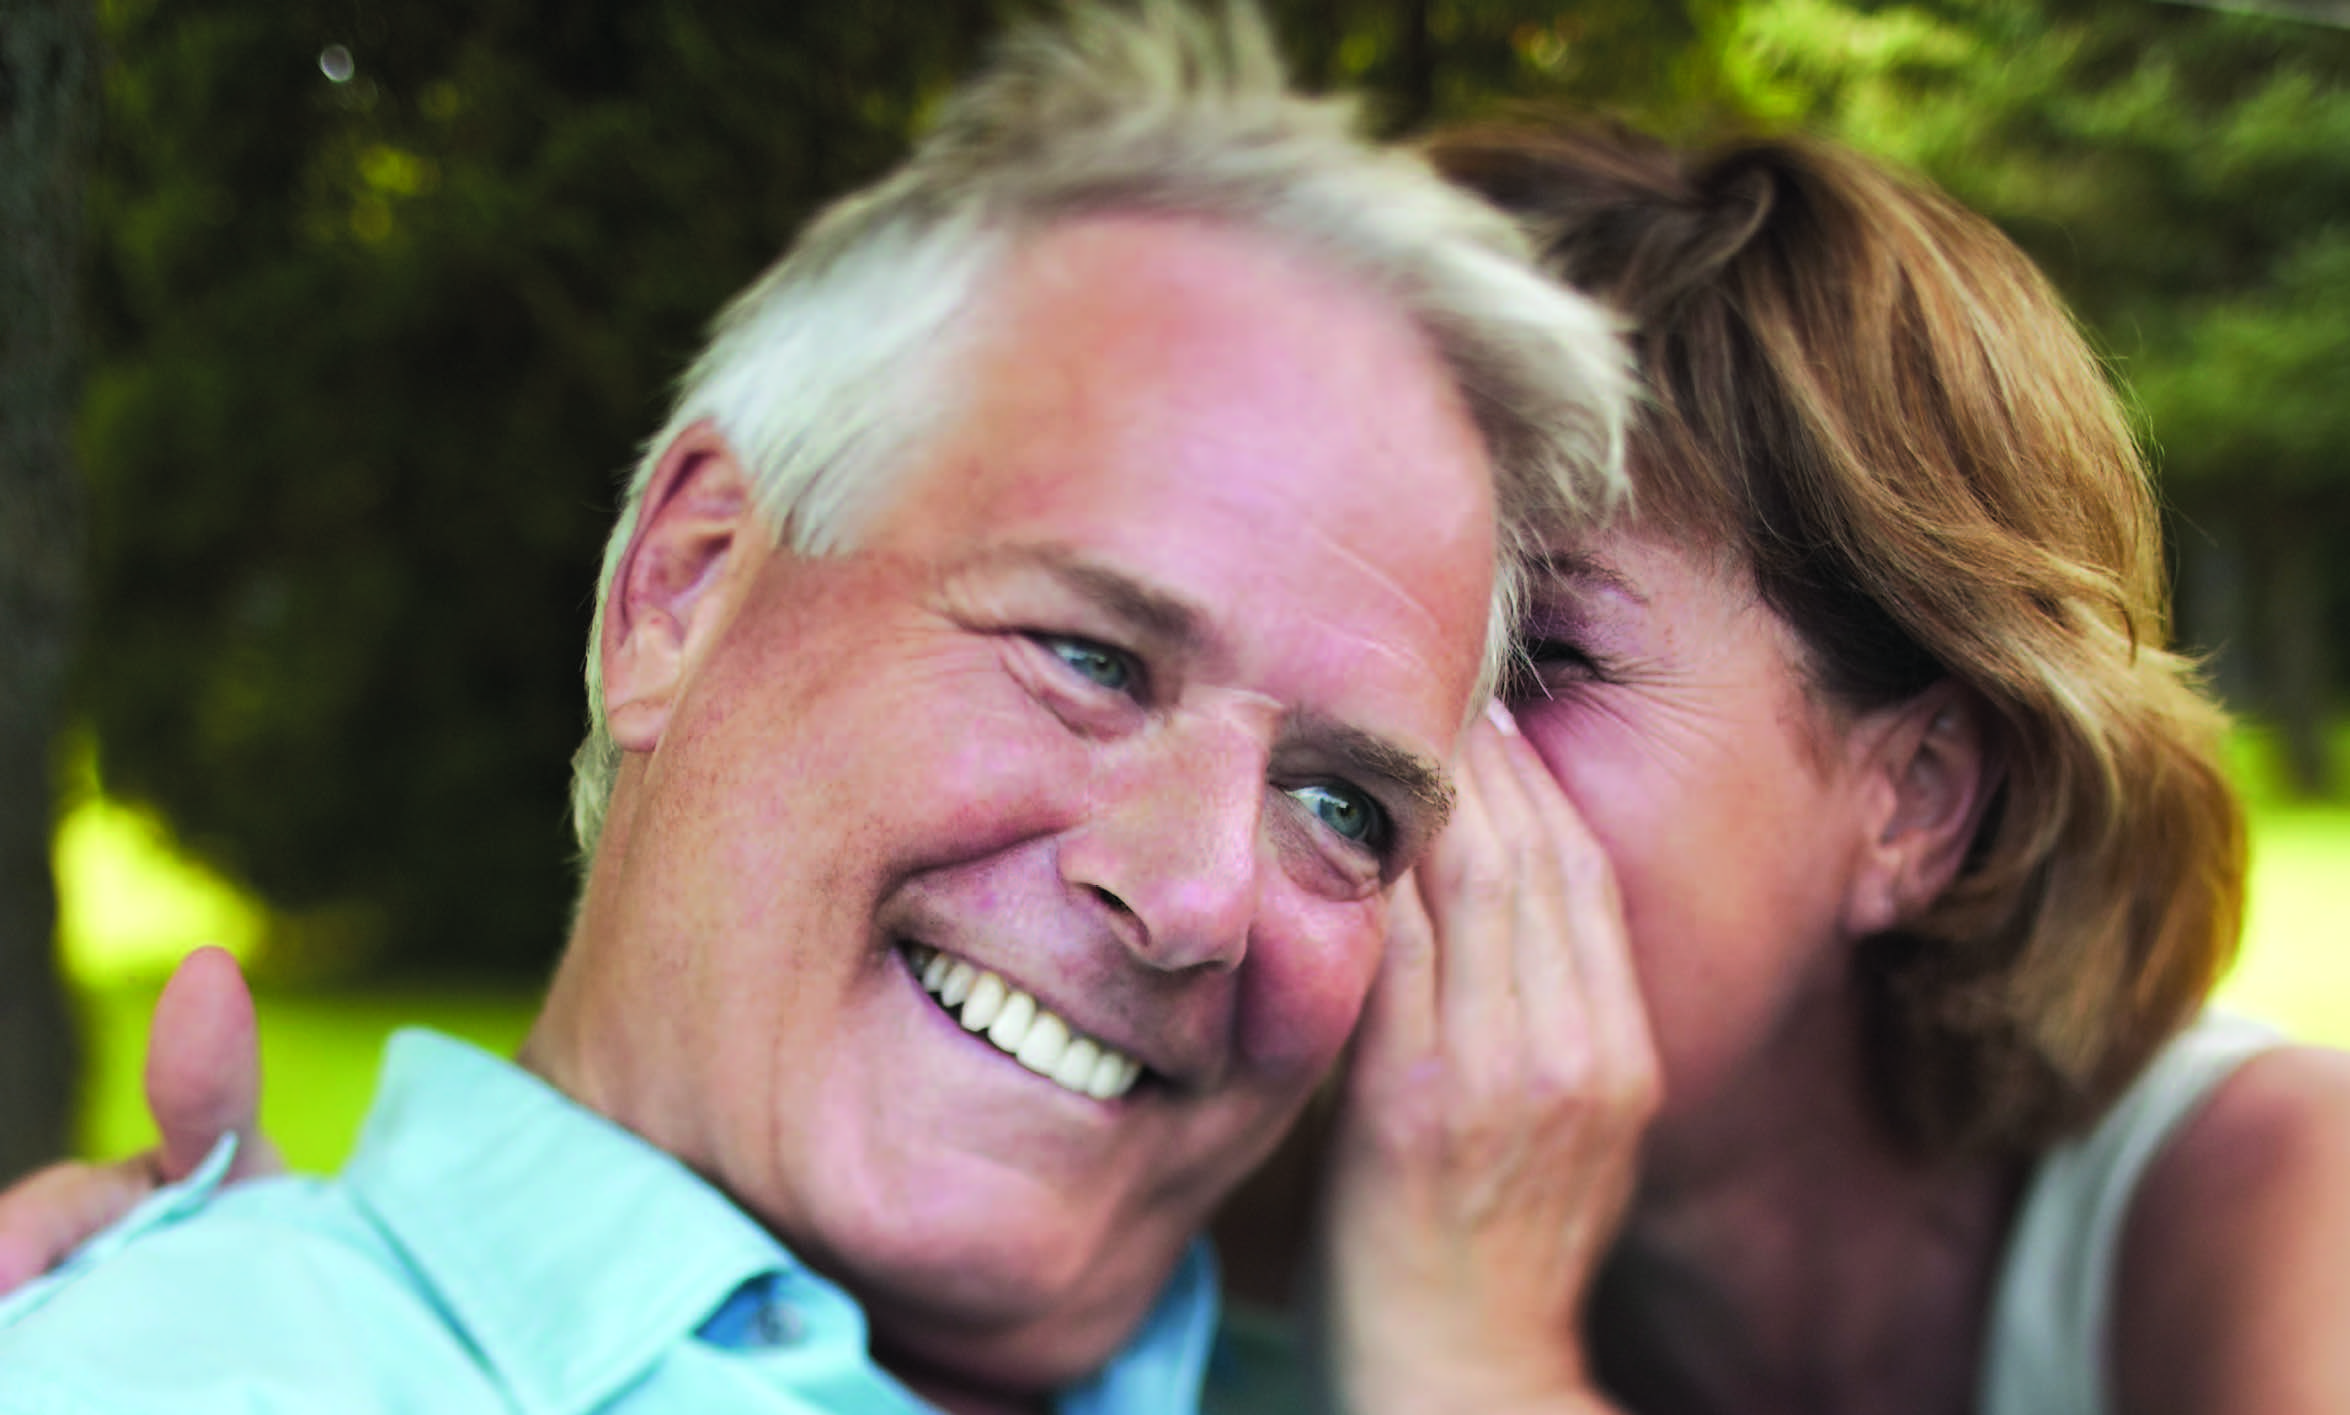 Healthy Relationships Slow the Aging Process